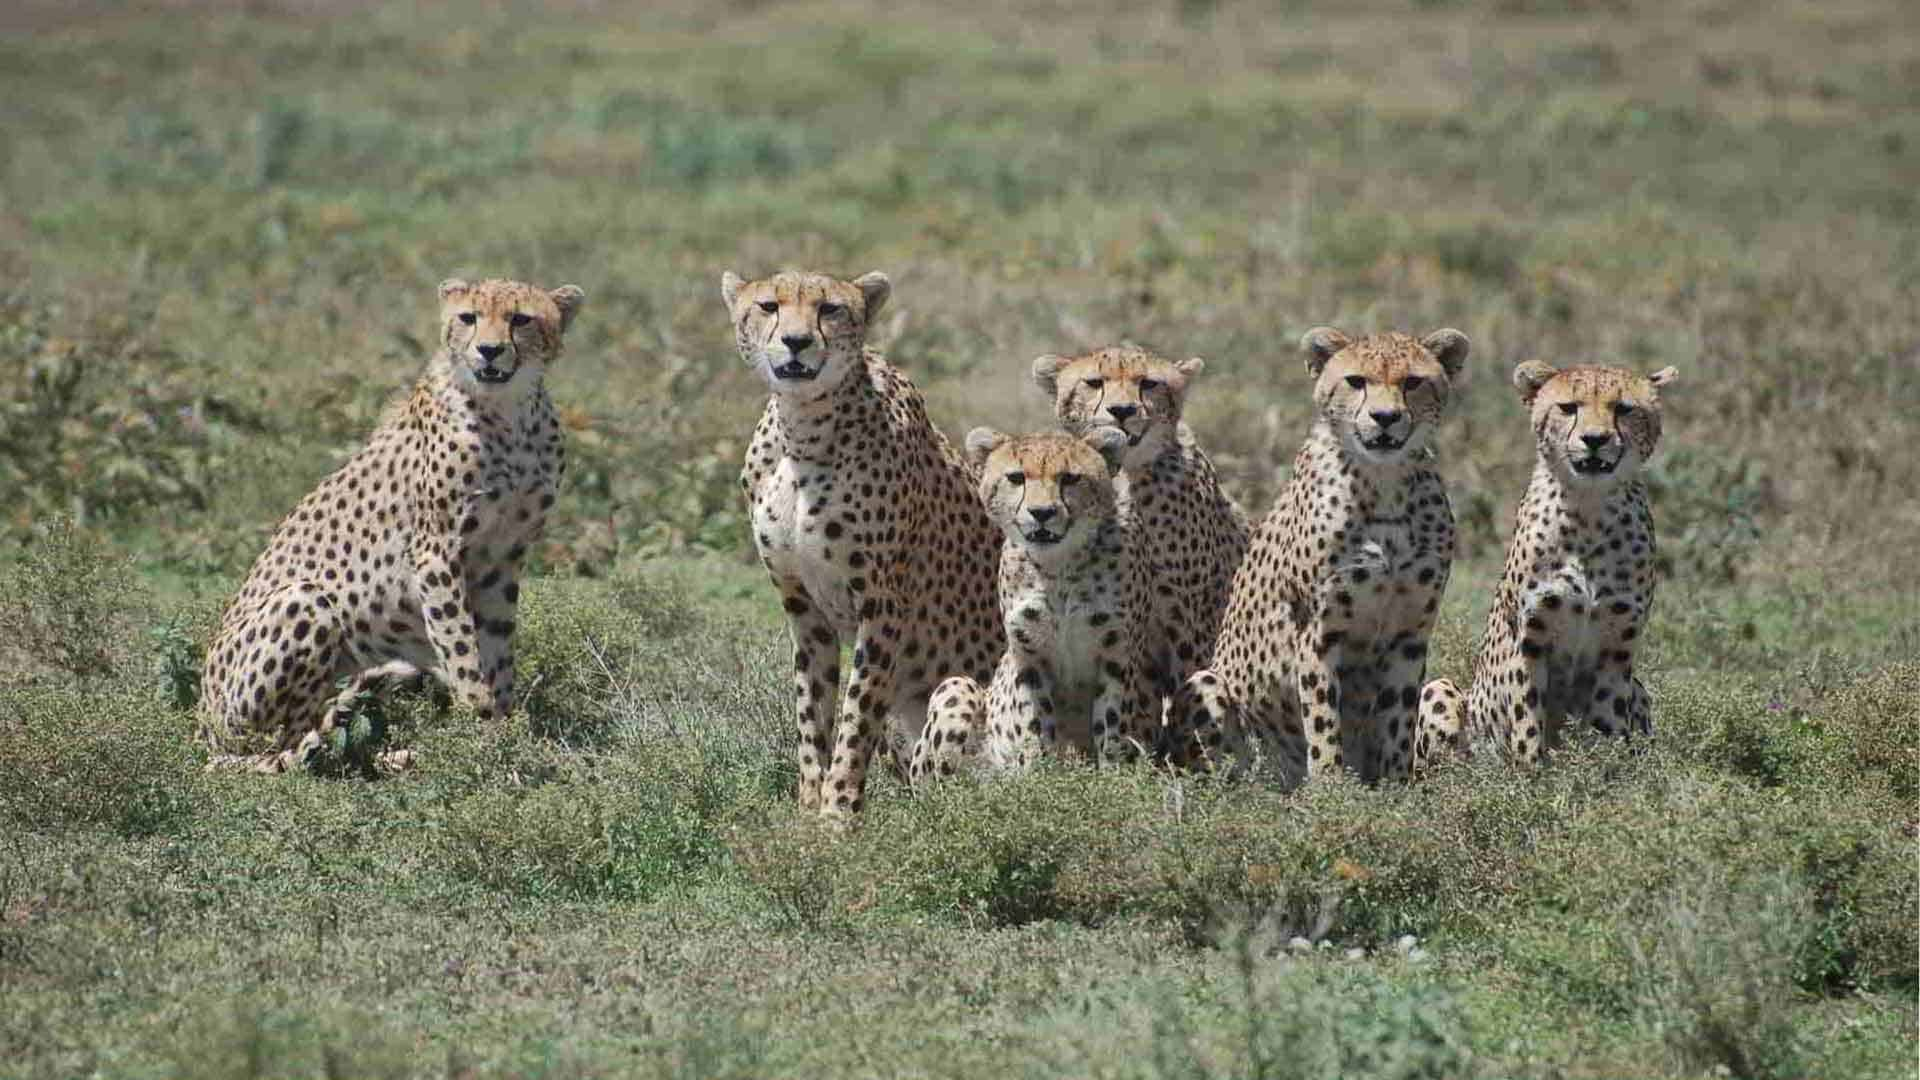 family of hungry cheetaha looking for their next meal on the serengeti planes on Tanzania safari